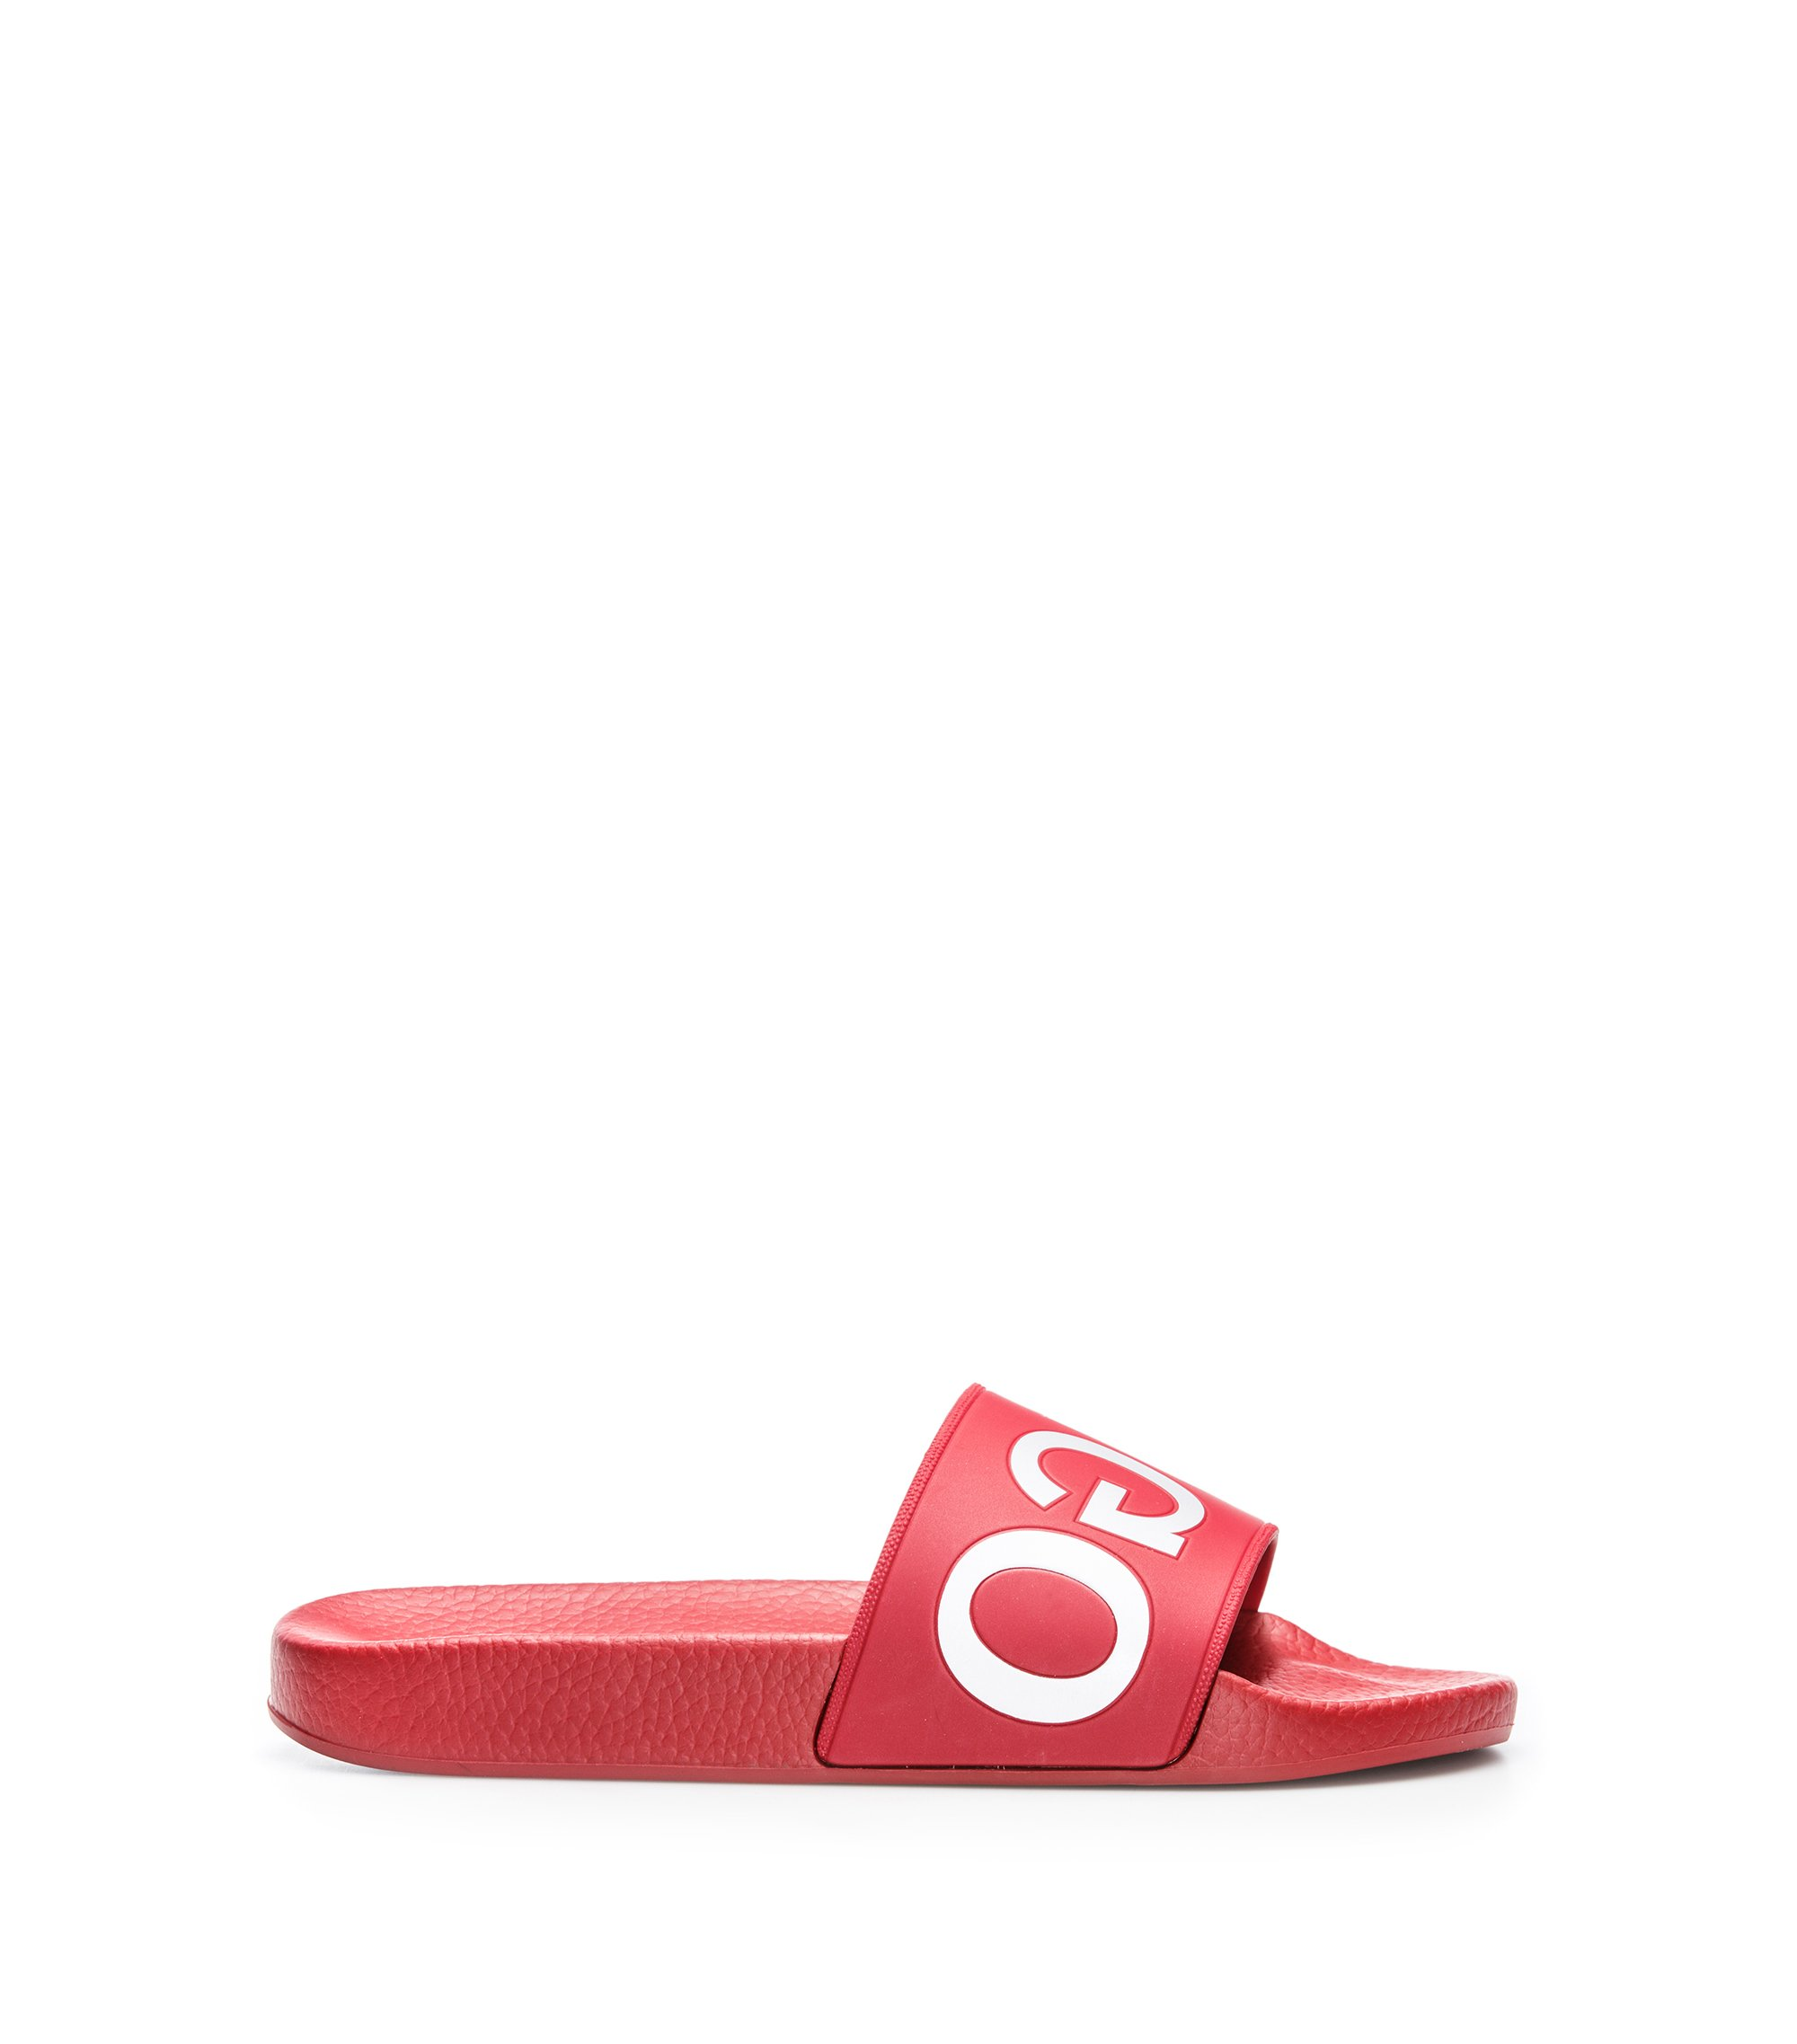 Pool sliders with reverse logo, Red